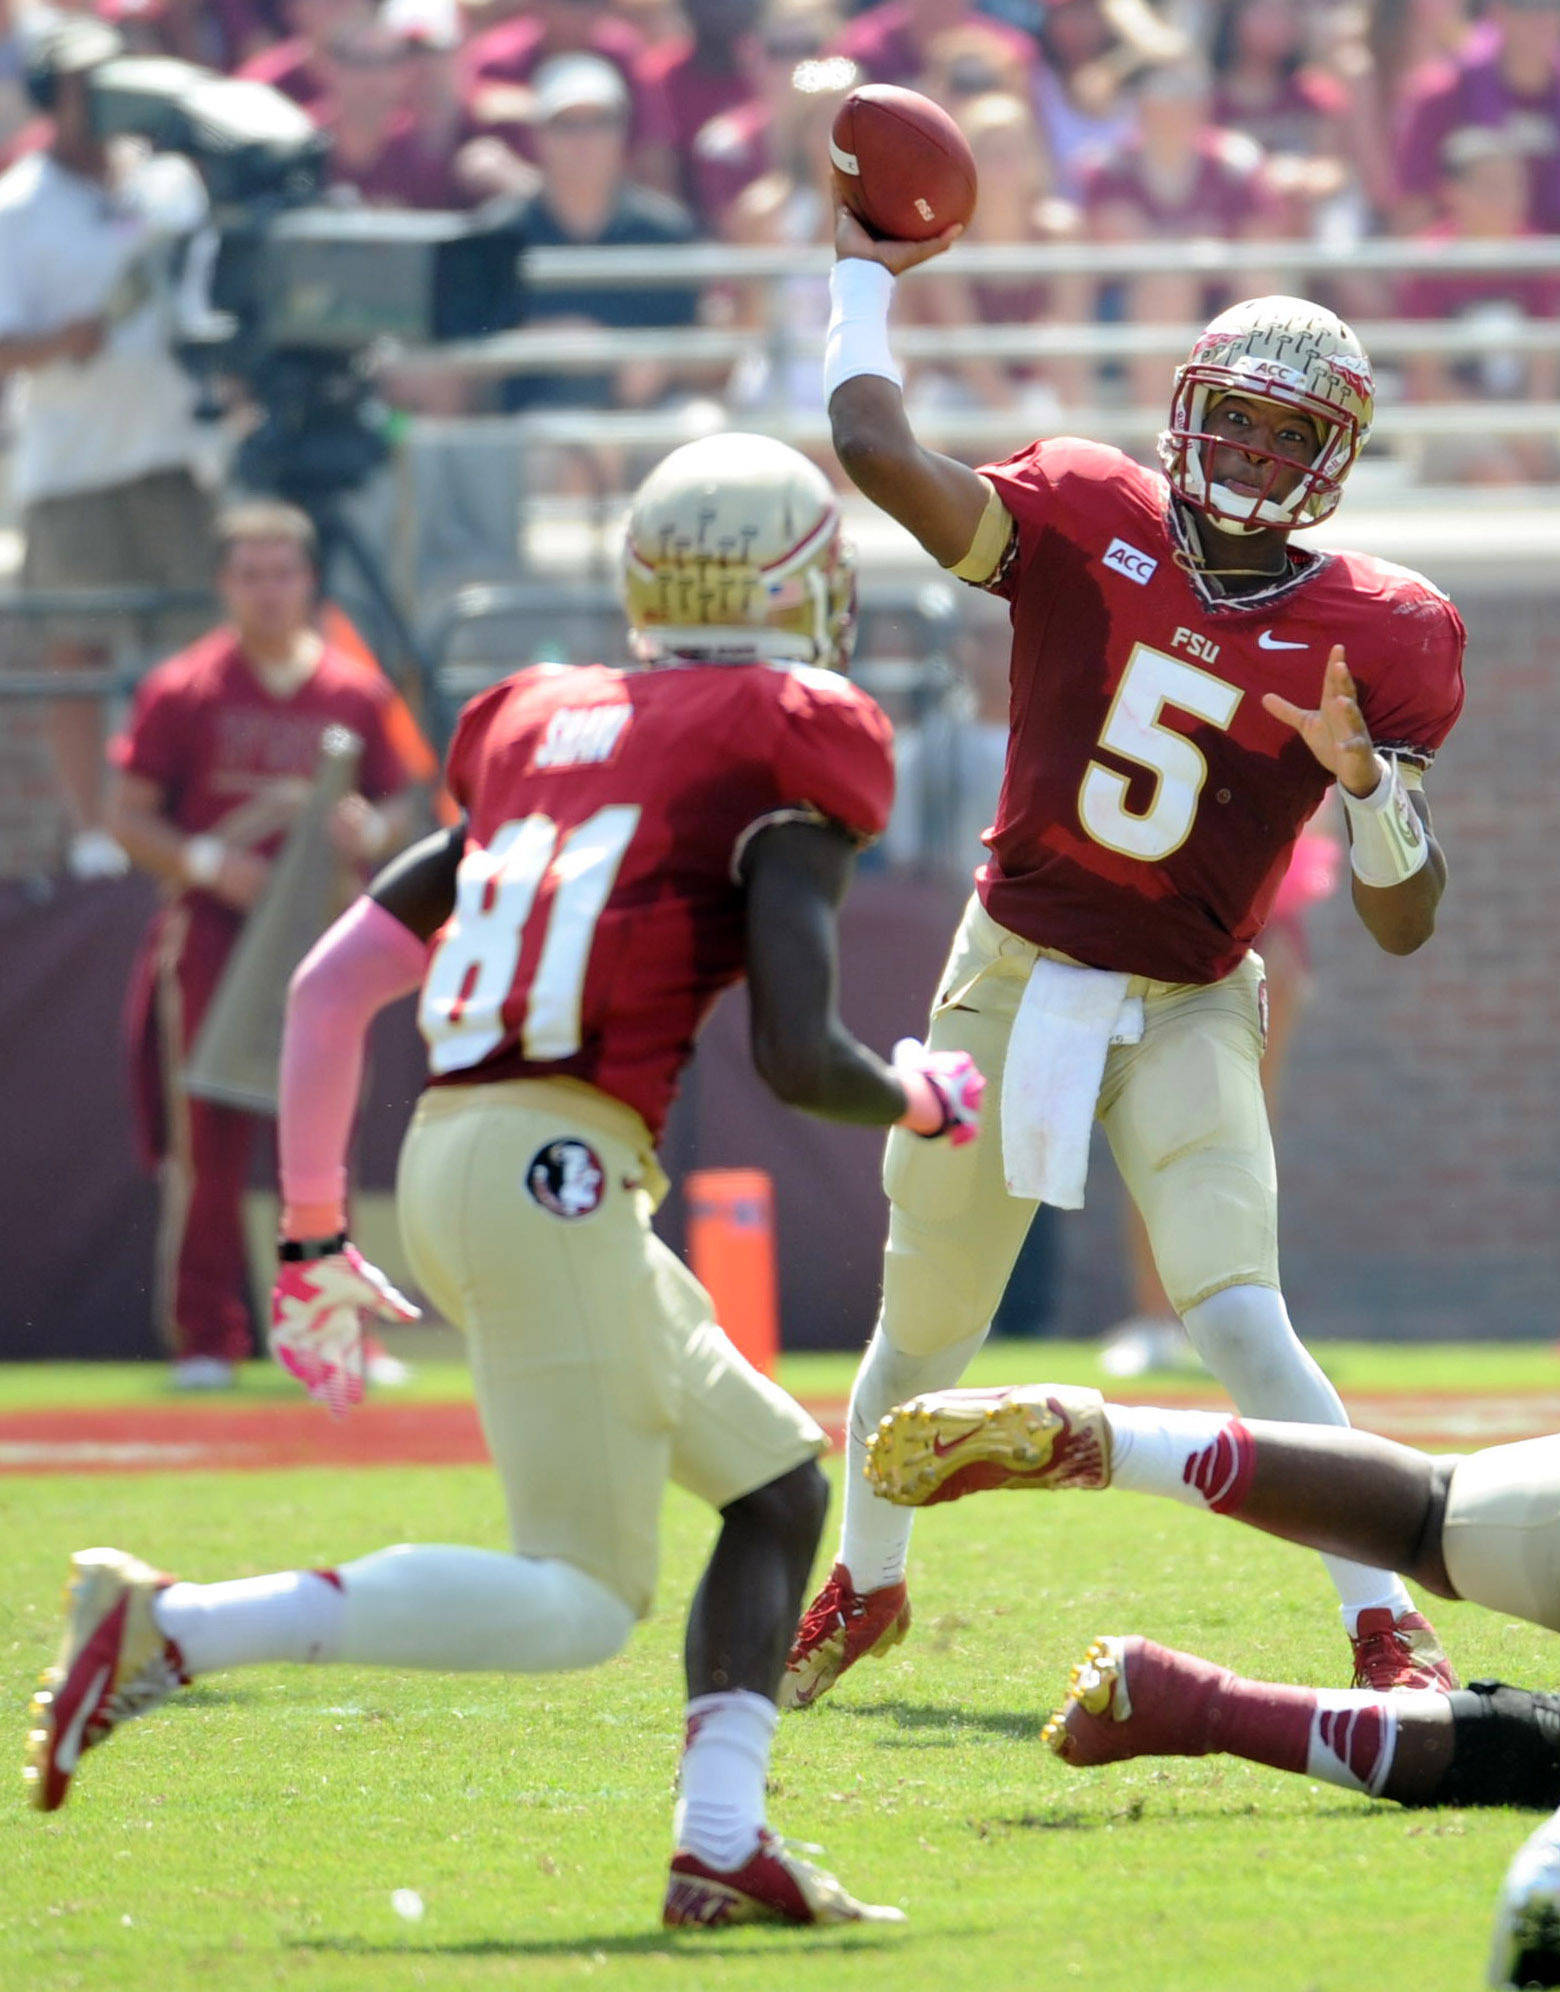 Quarterback Jameis Winston (5) throws the ball to wide receiver Kenny Shaw (81). Mandatory Credit: Melina Vastola-USA TODAY Sports